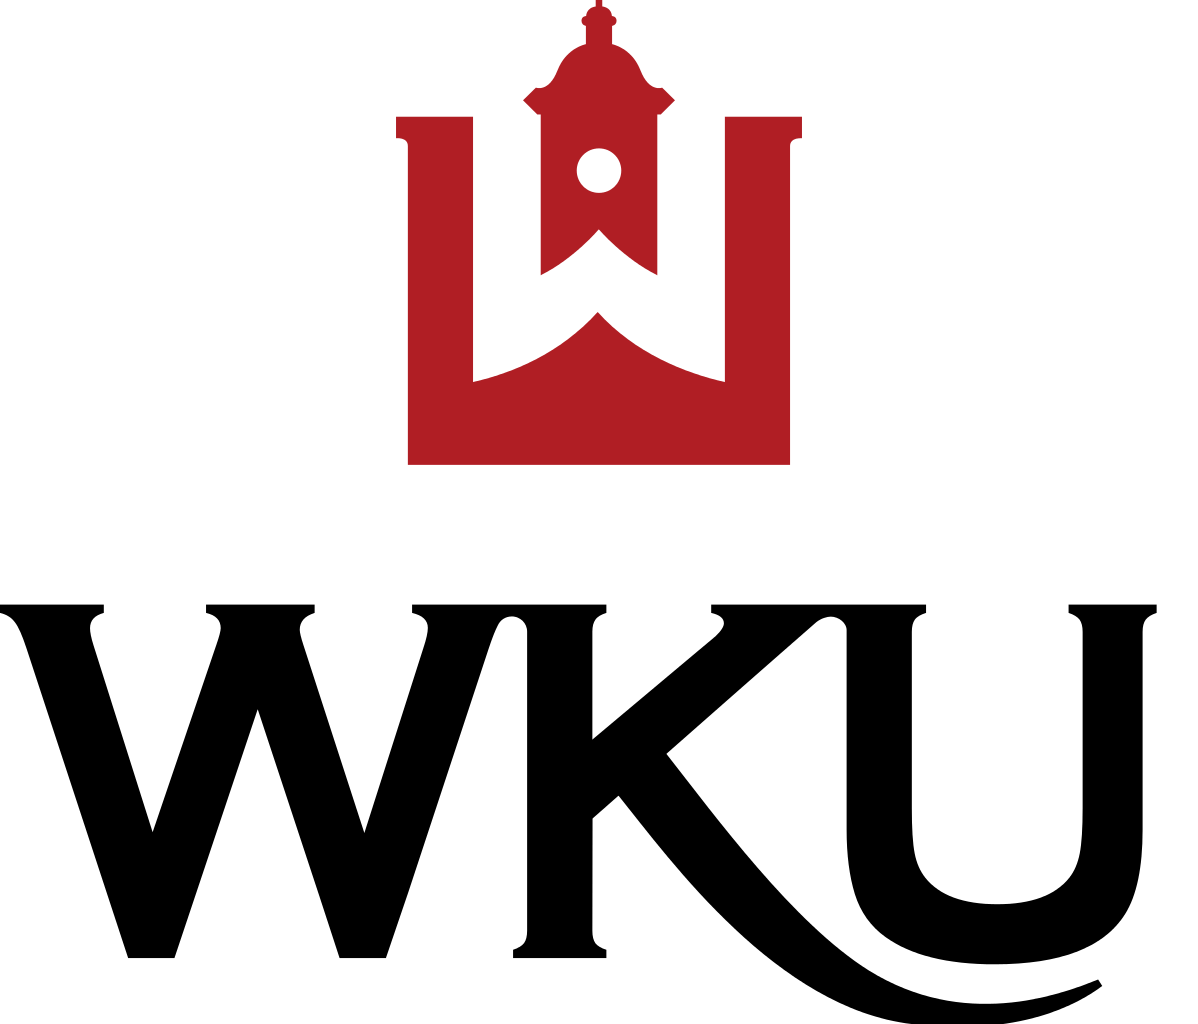 Western Kentucky University offers eSports degrees and Training